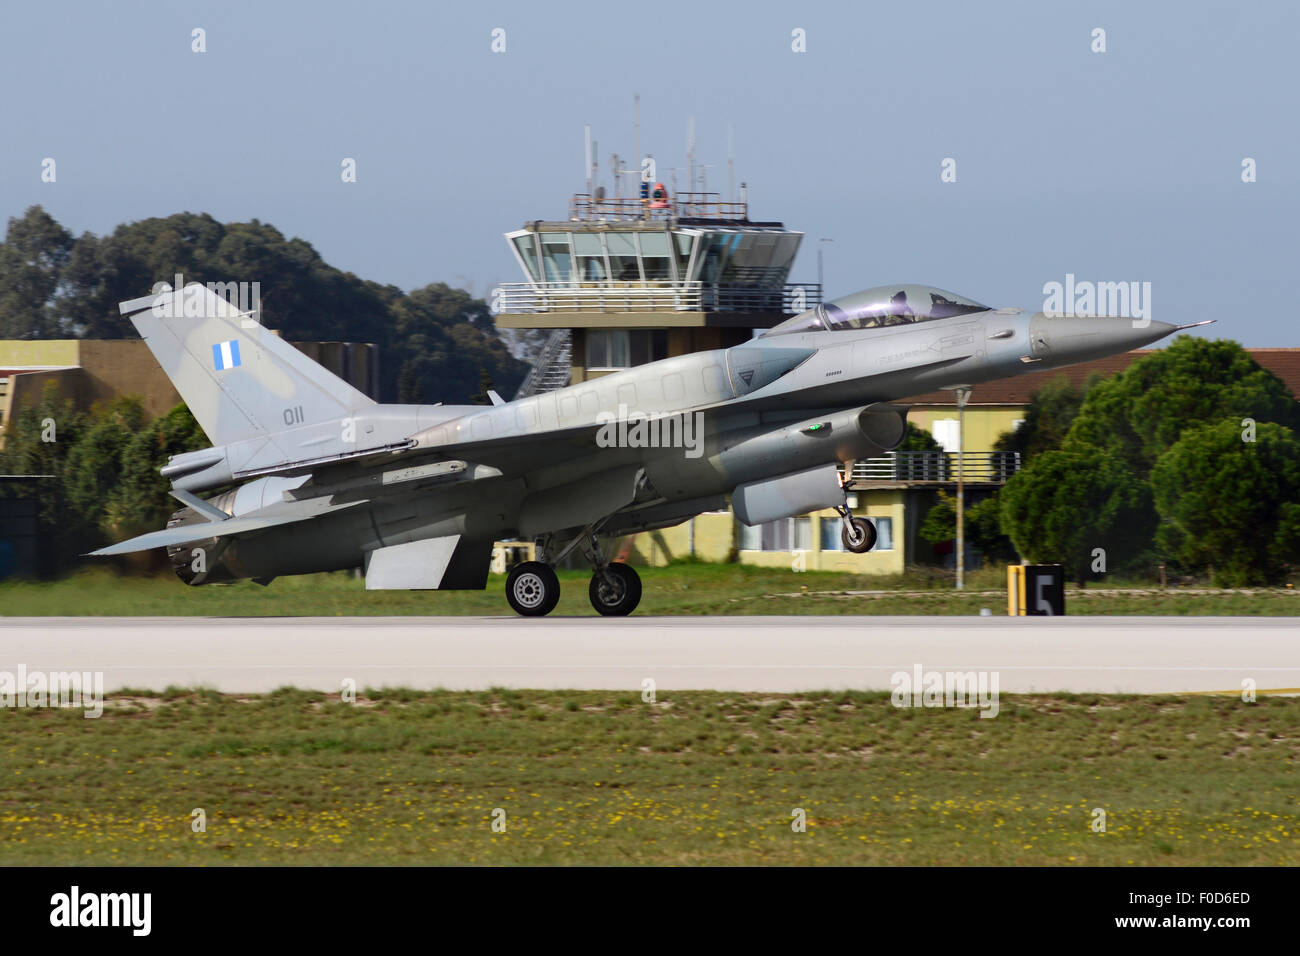 Hellenic Air Force F-16D Block 52 with conformal fuel tanks landing at Araxos Air Base, Greece. - Stock Image